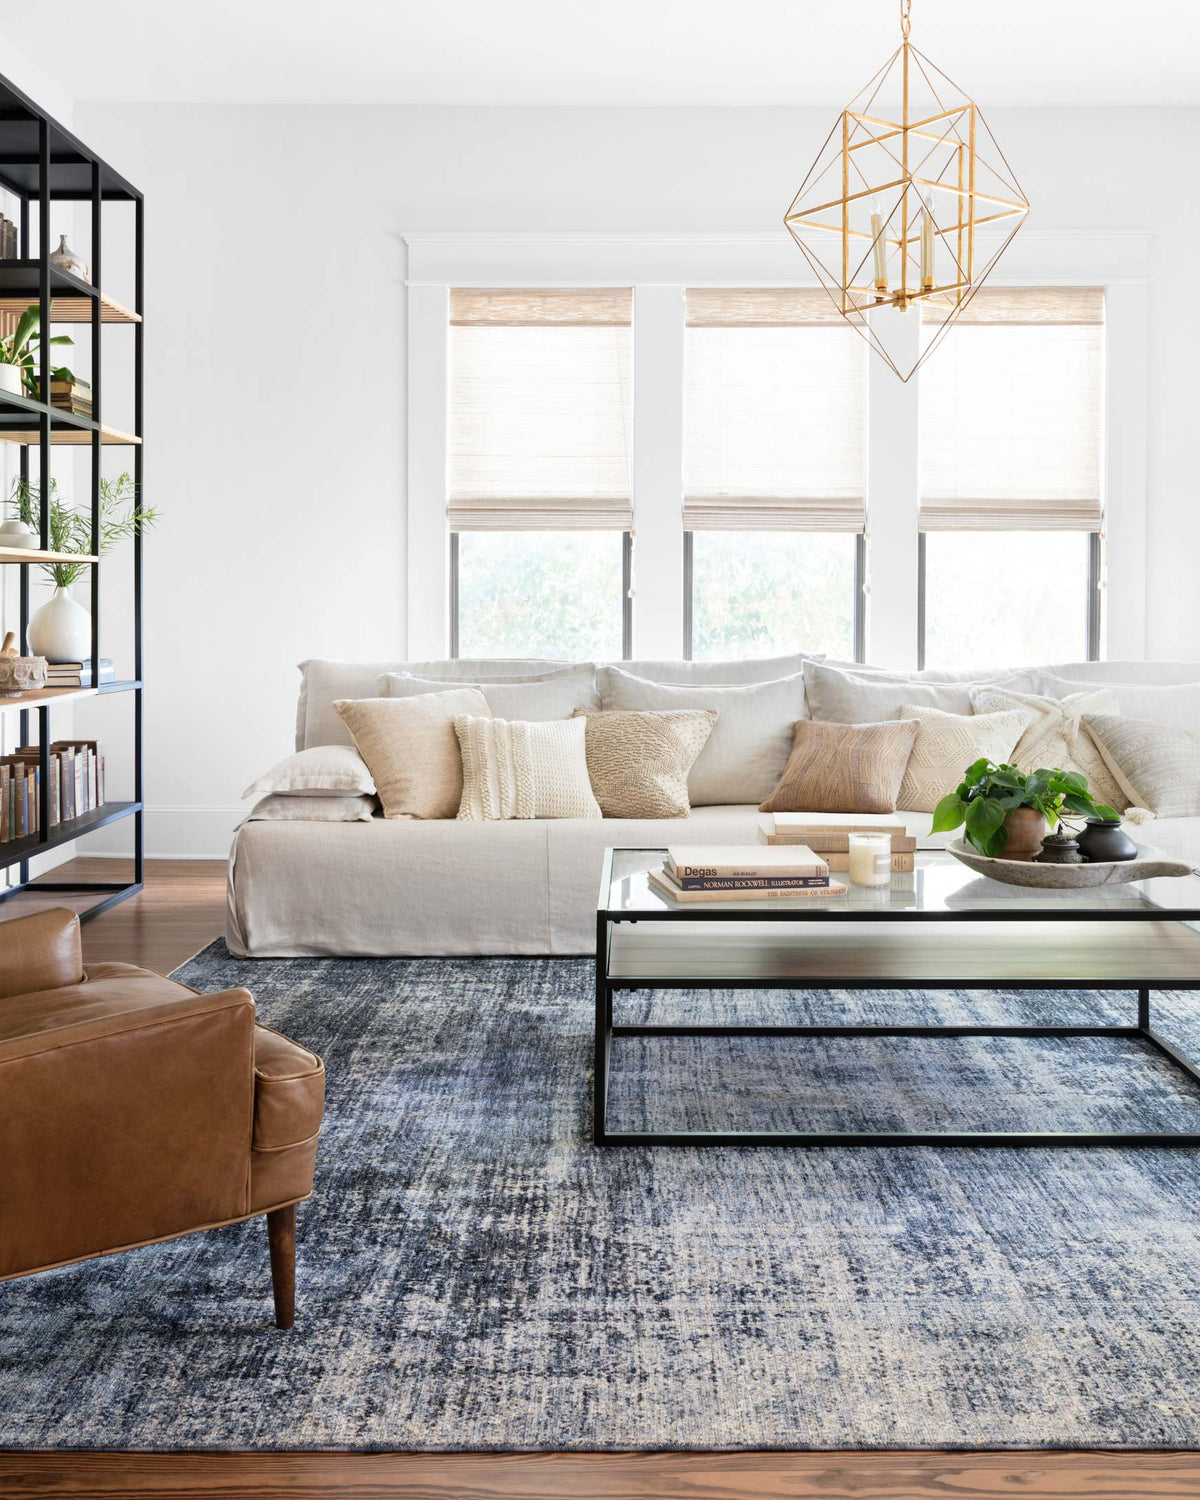 Magnolia Home by Joanna Gaines.